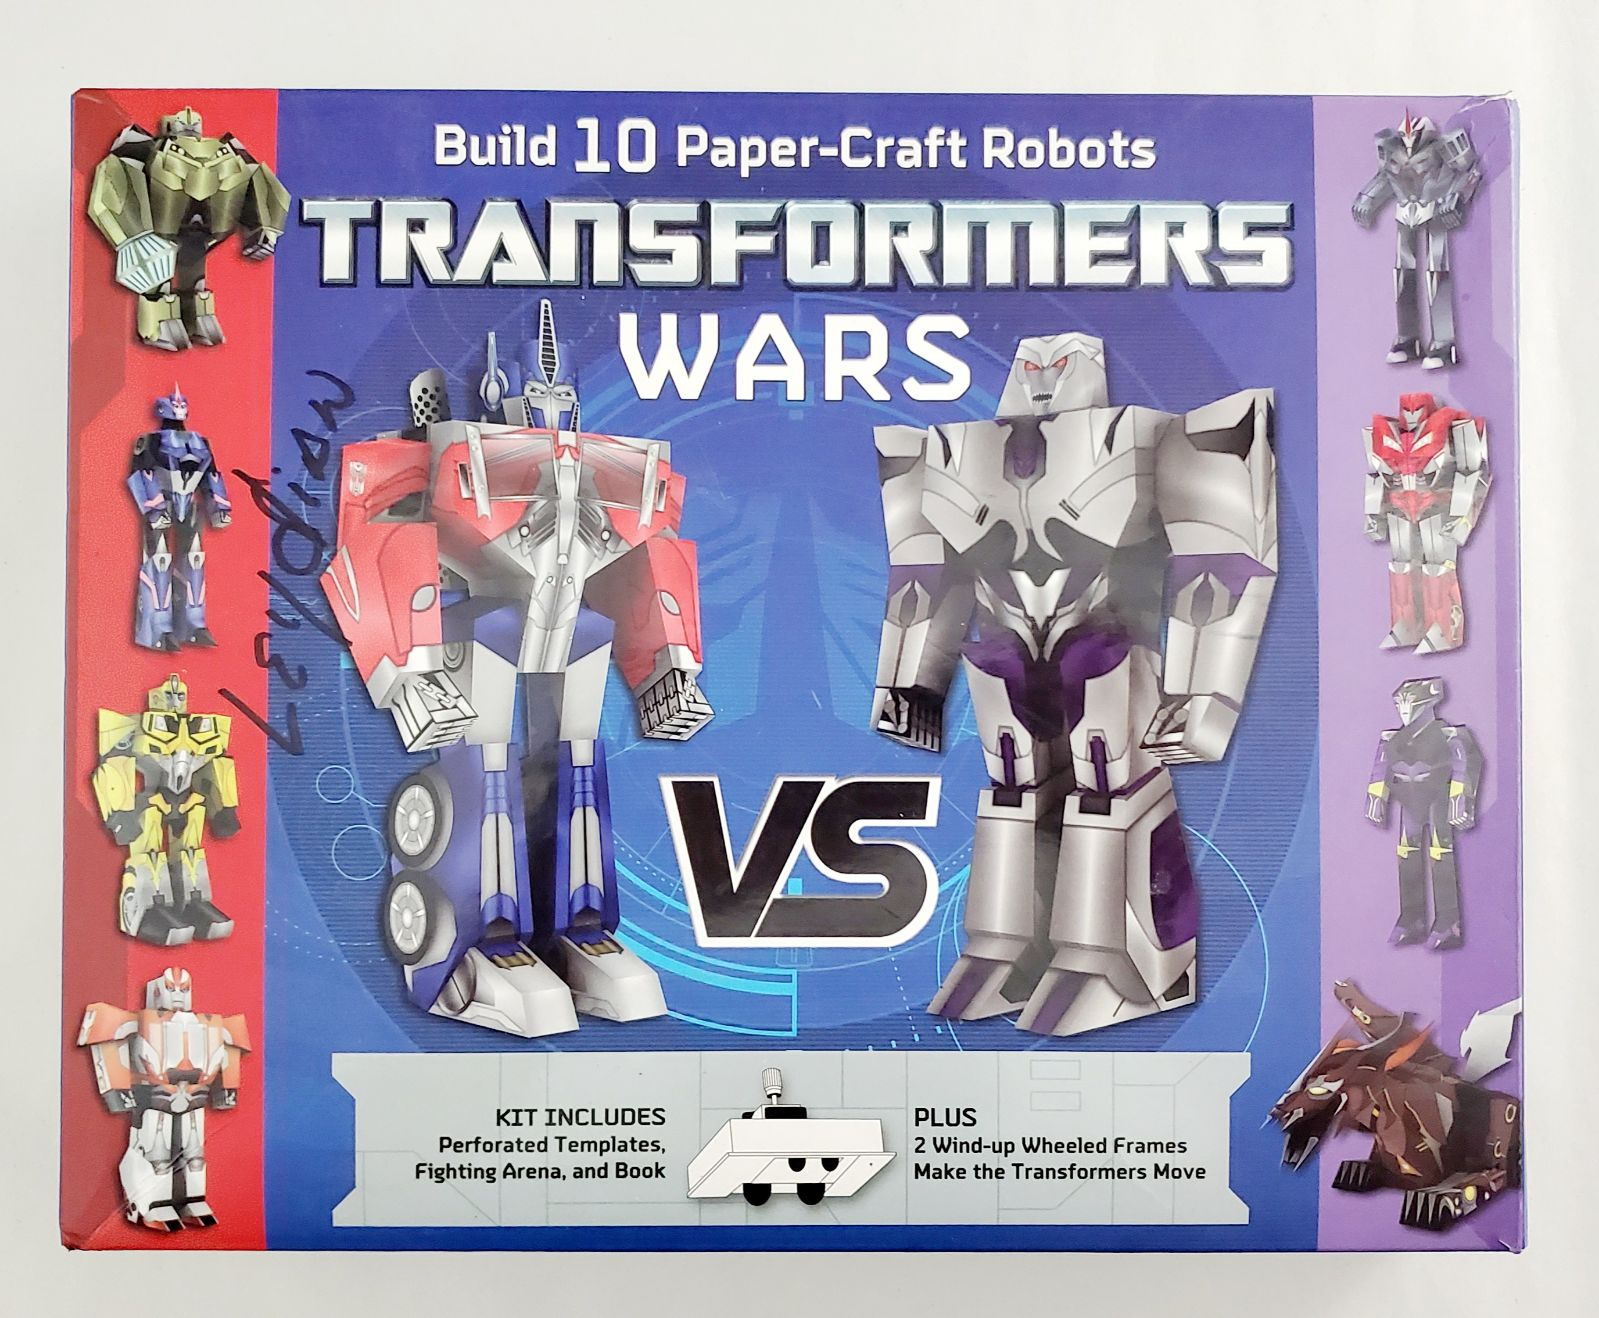 Transformers Wars Build Paper Craft Kit